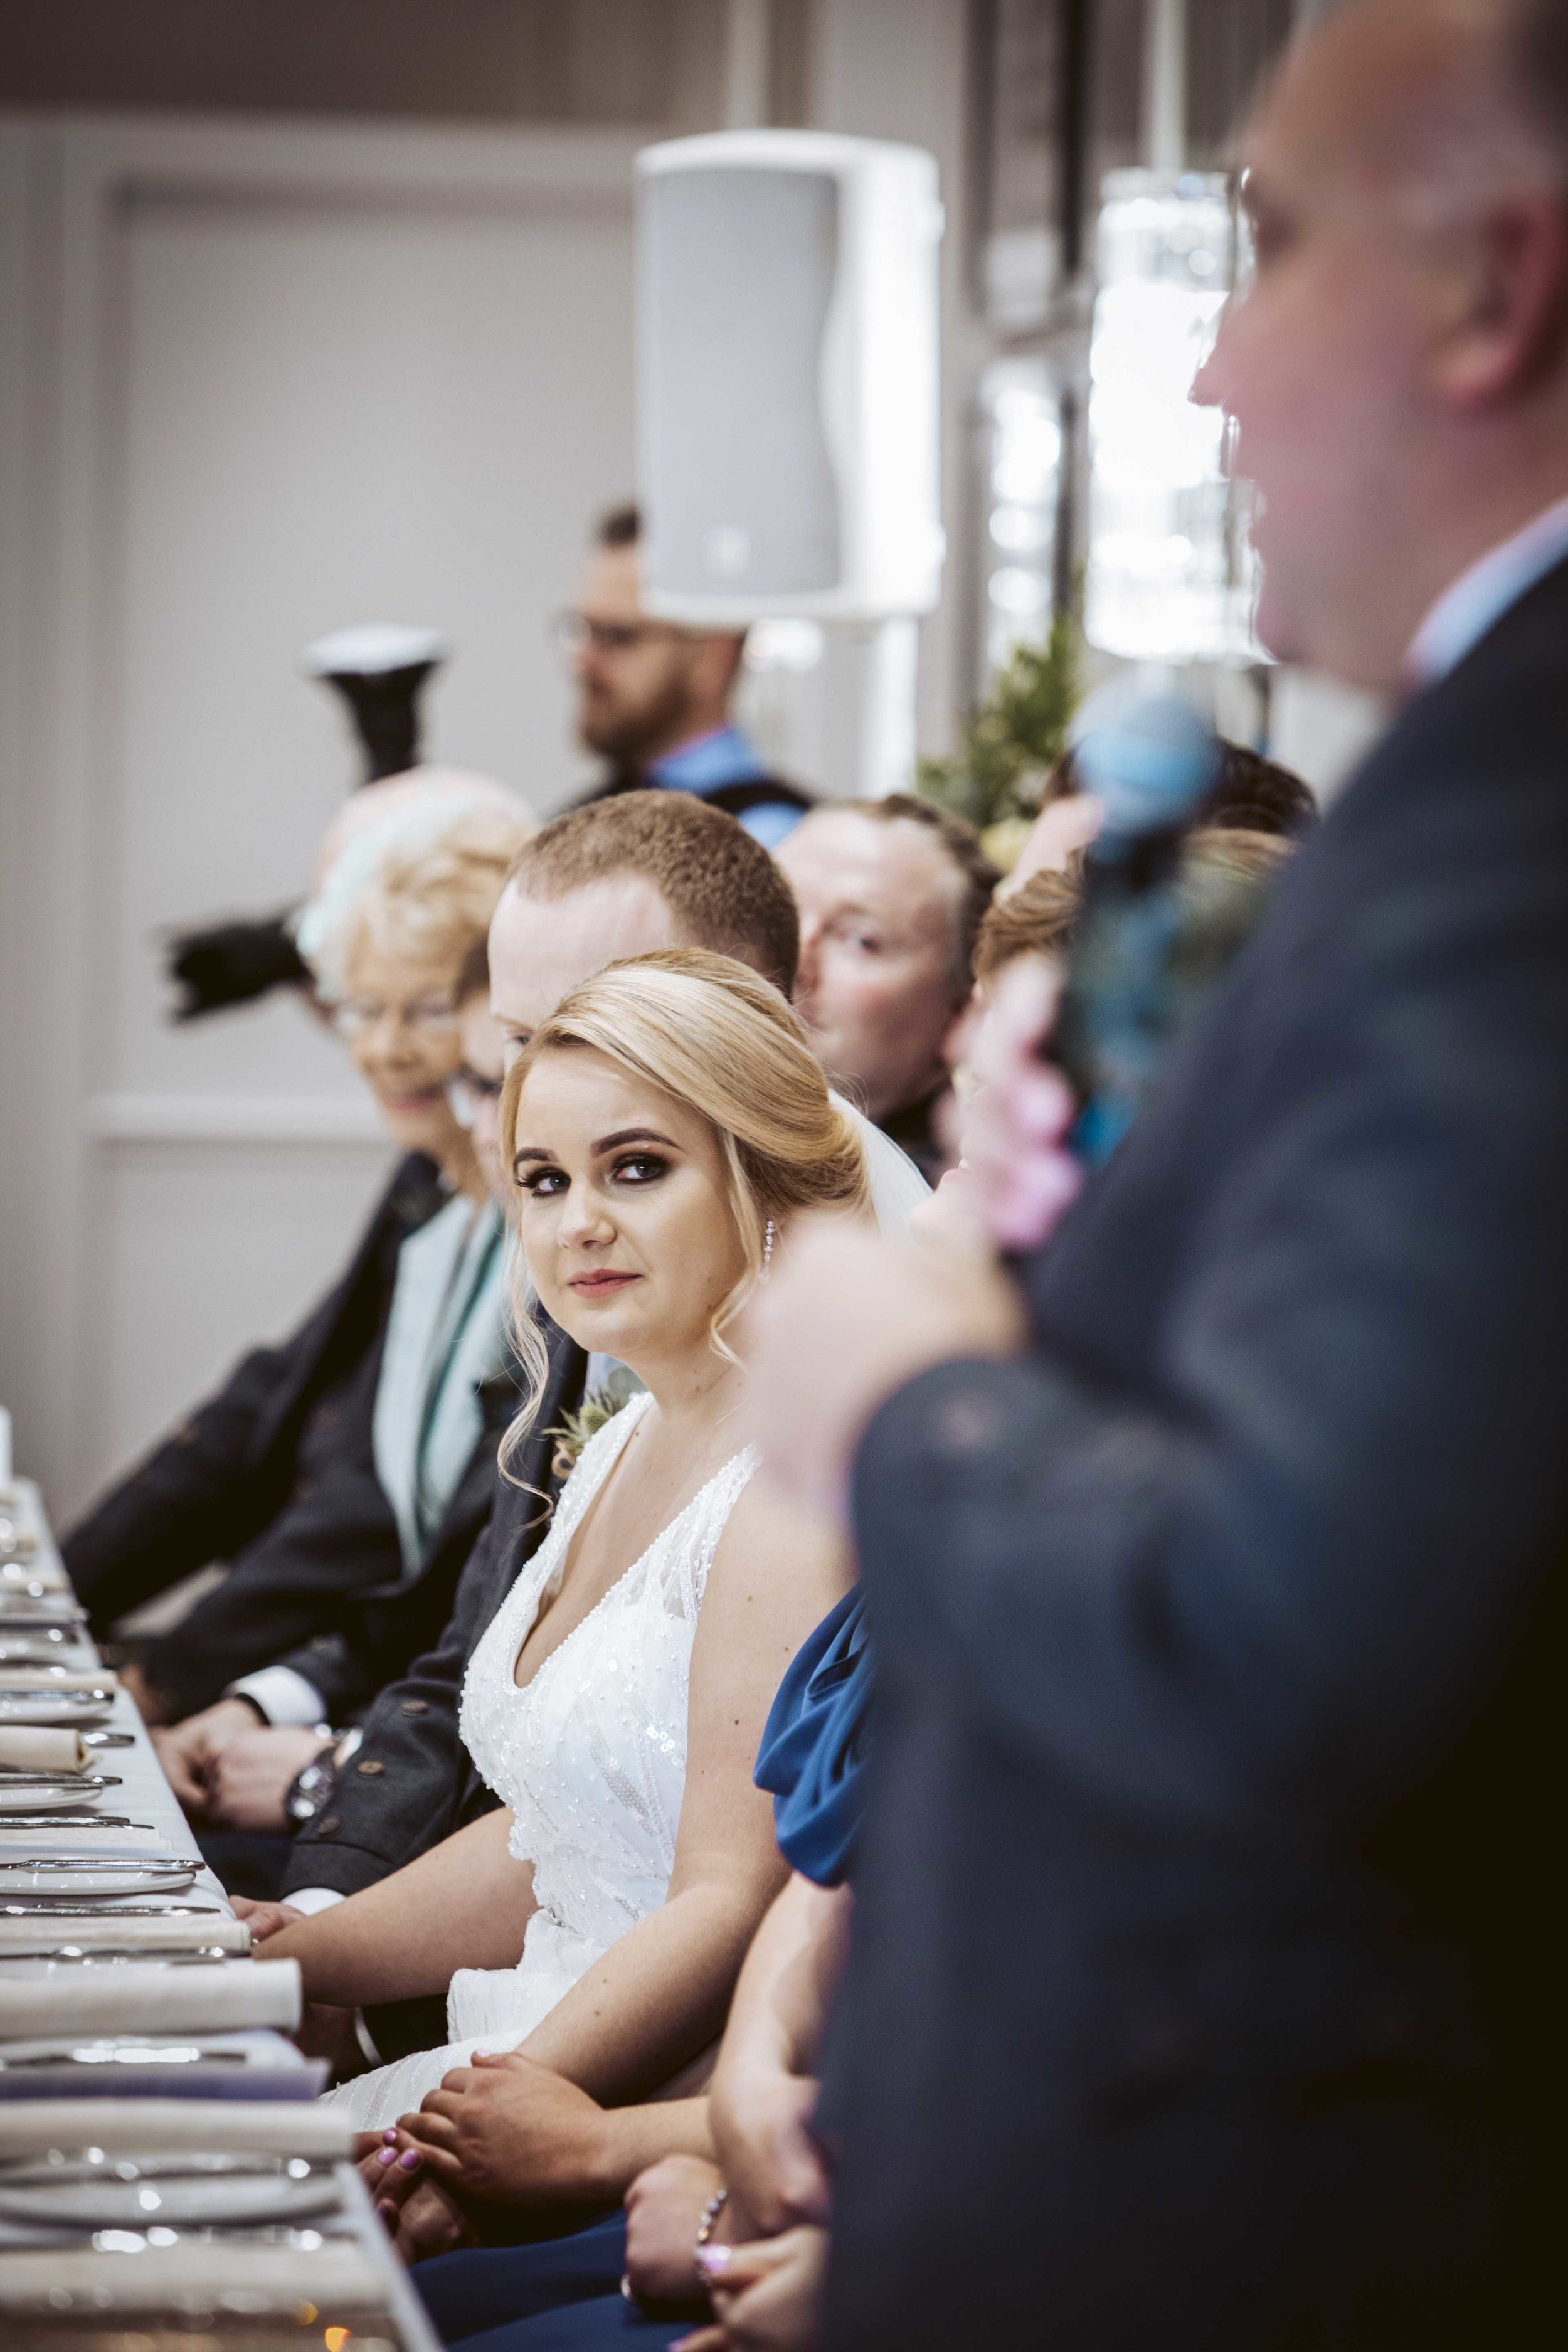 Mar Hall Wedding 2018, Haminsh & Emma McEwan 60.JPG